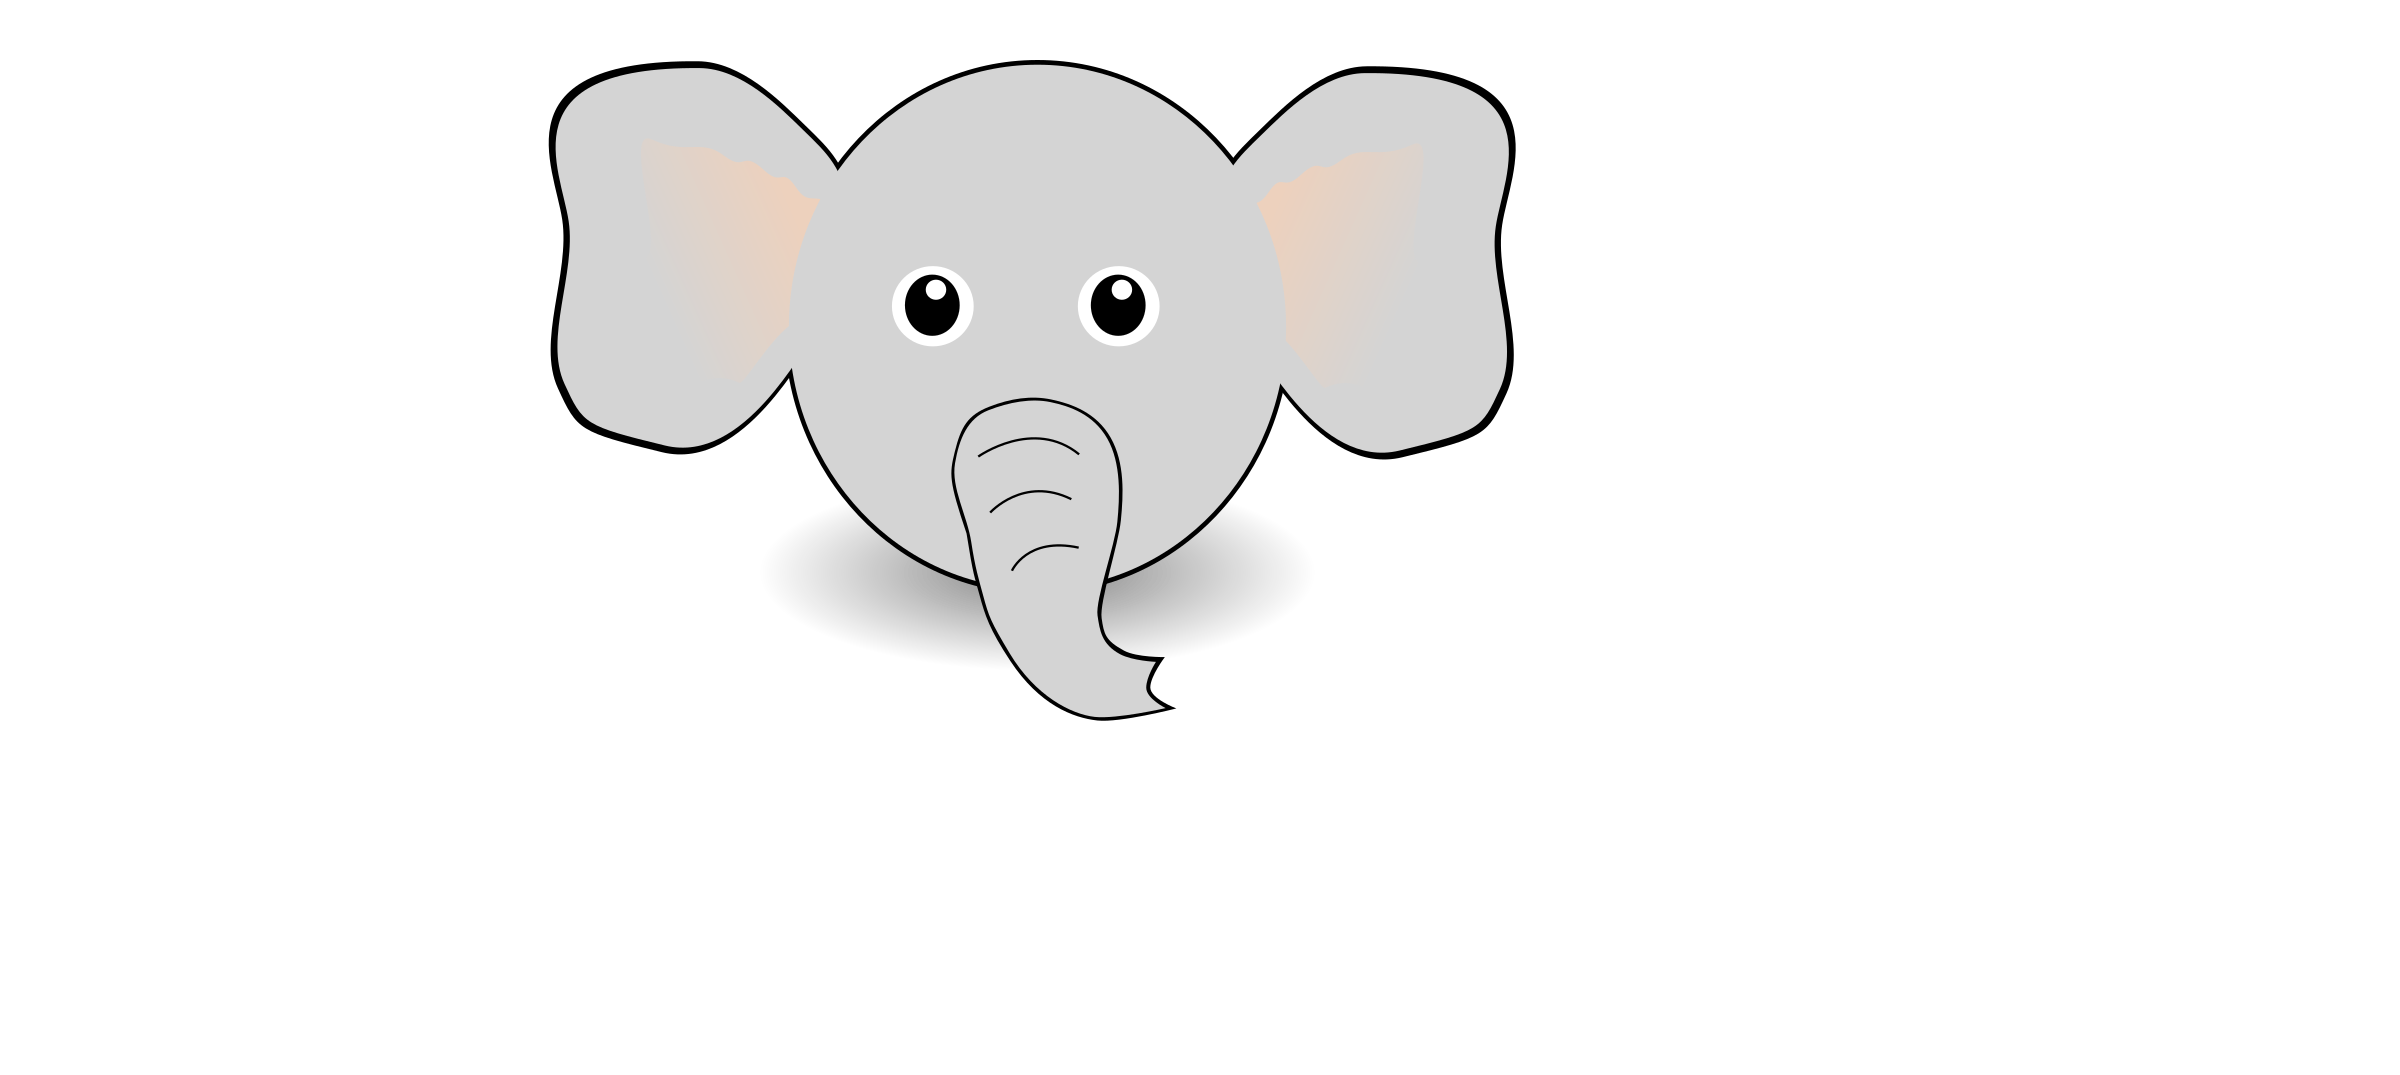 E for Elephant by pranav